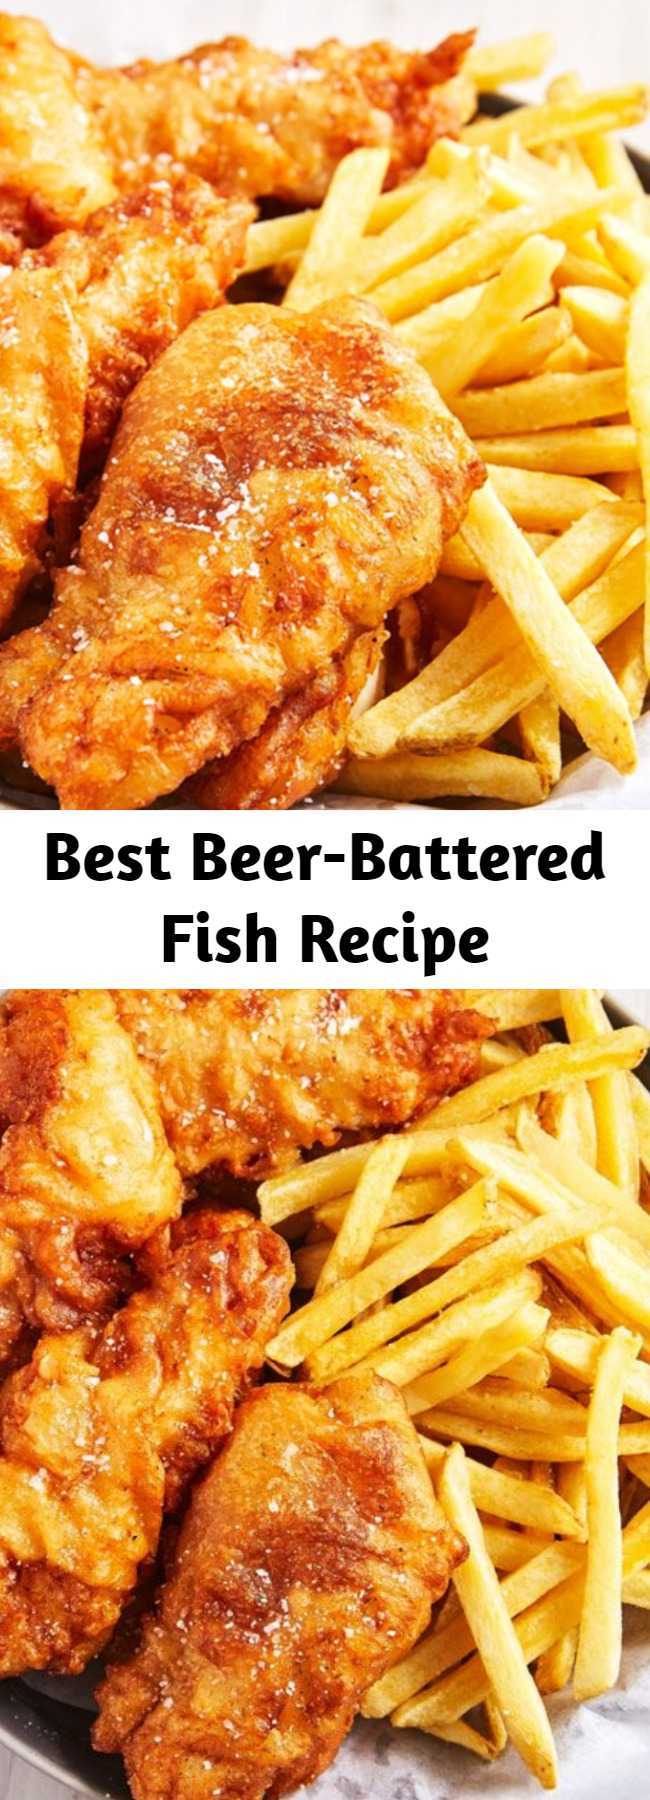 Best Beer-Battered Fish Recipe - There's nothing super crazy about this recipe, but when you do it right, it's absolutely perfect.